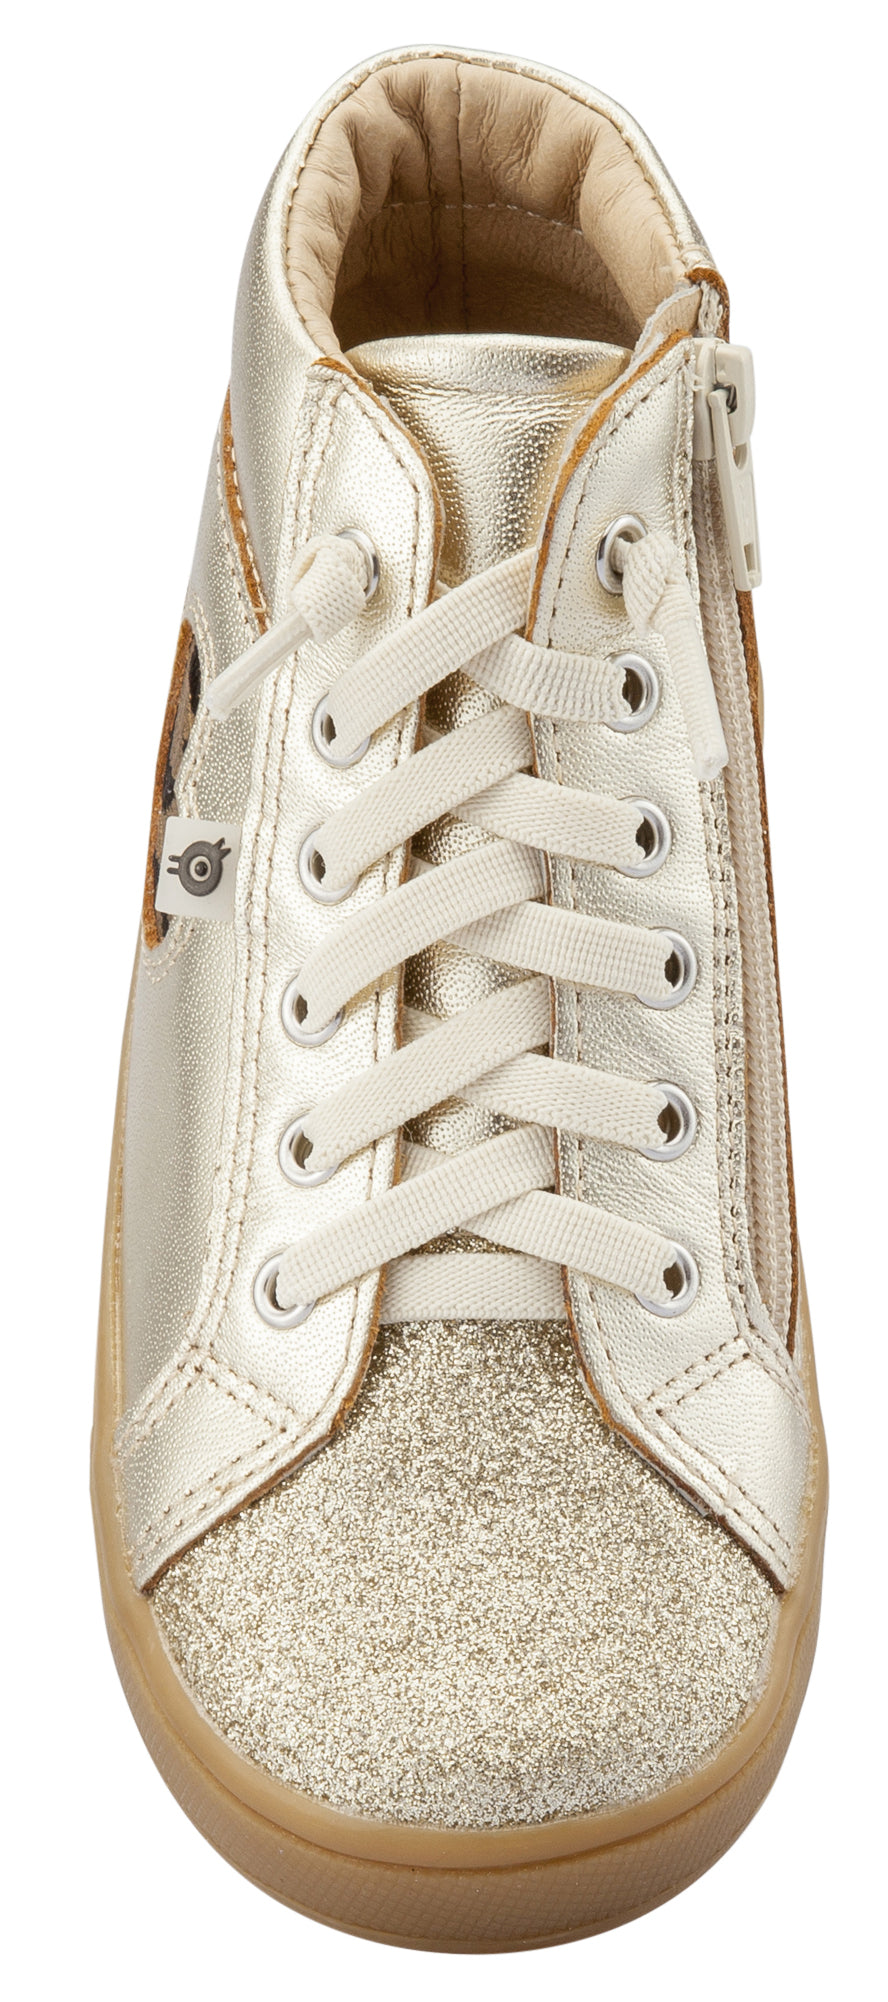 Old Soles Girl's Hearty Cat Sneakers, Gold / Glam Gold / Cat-Gold